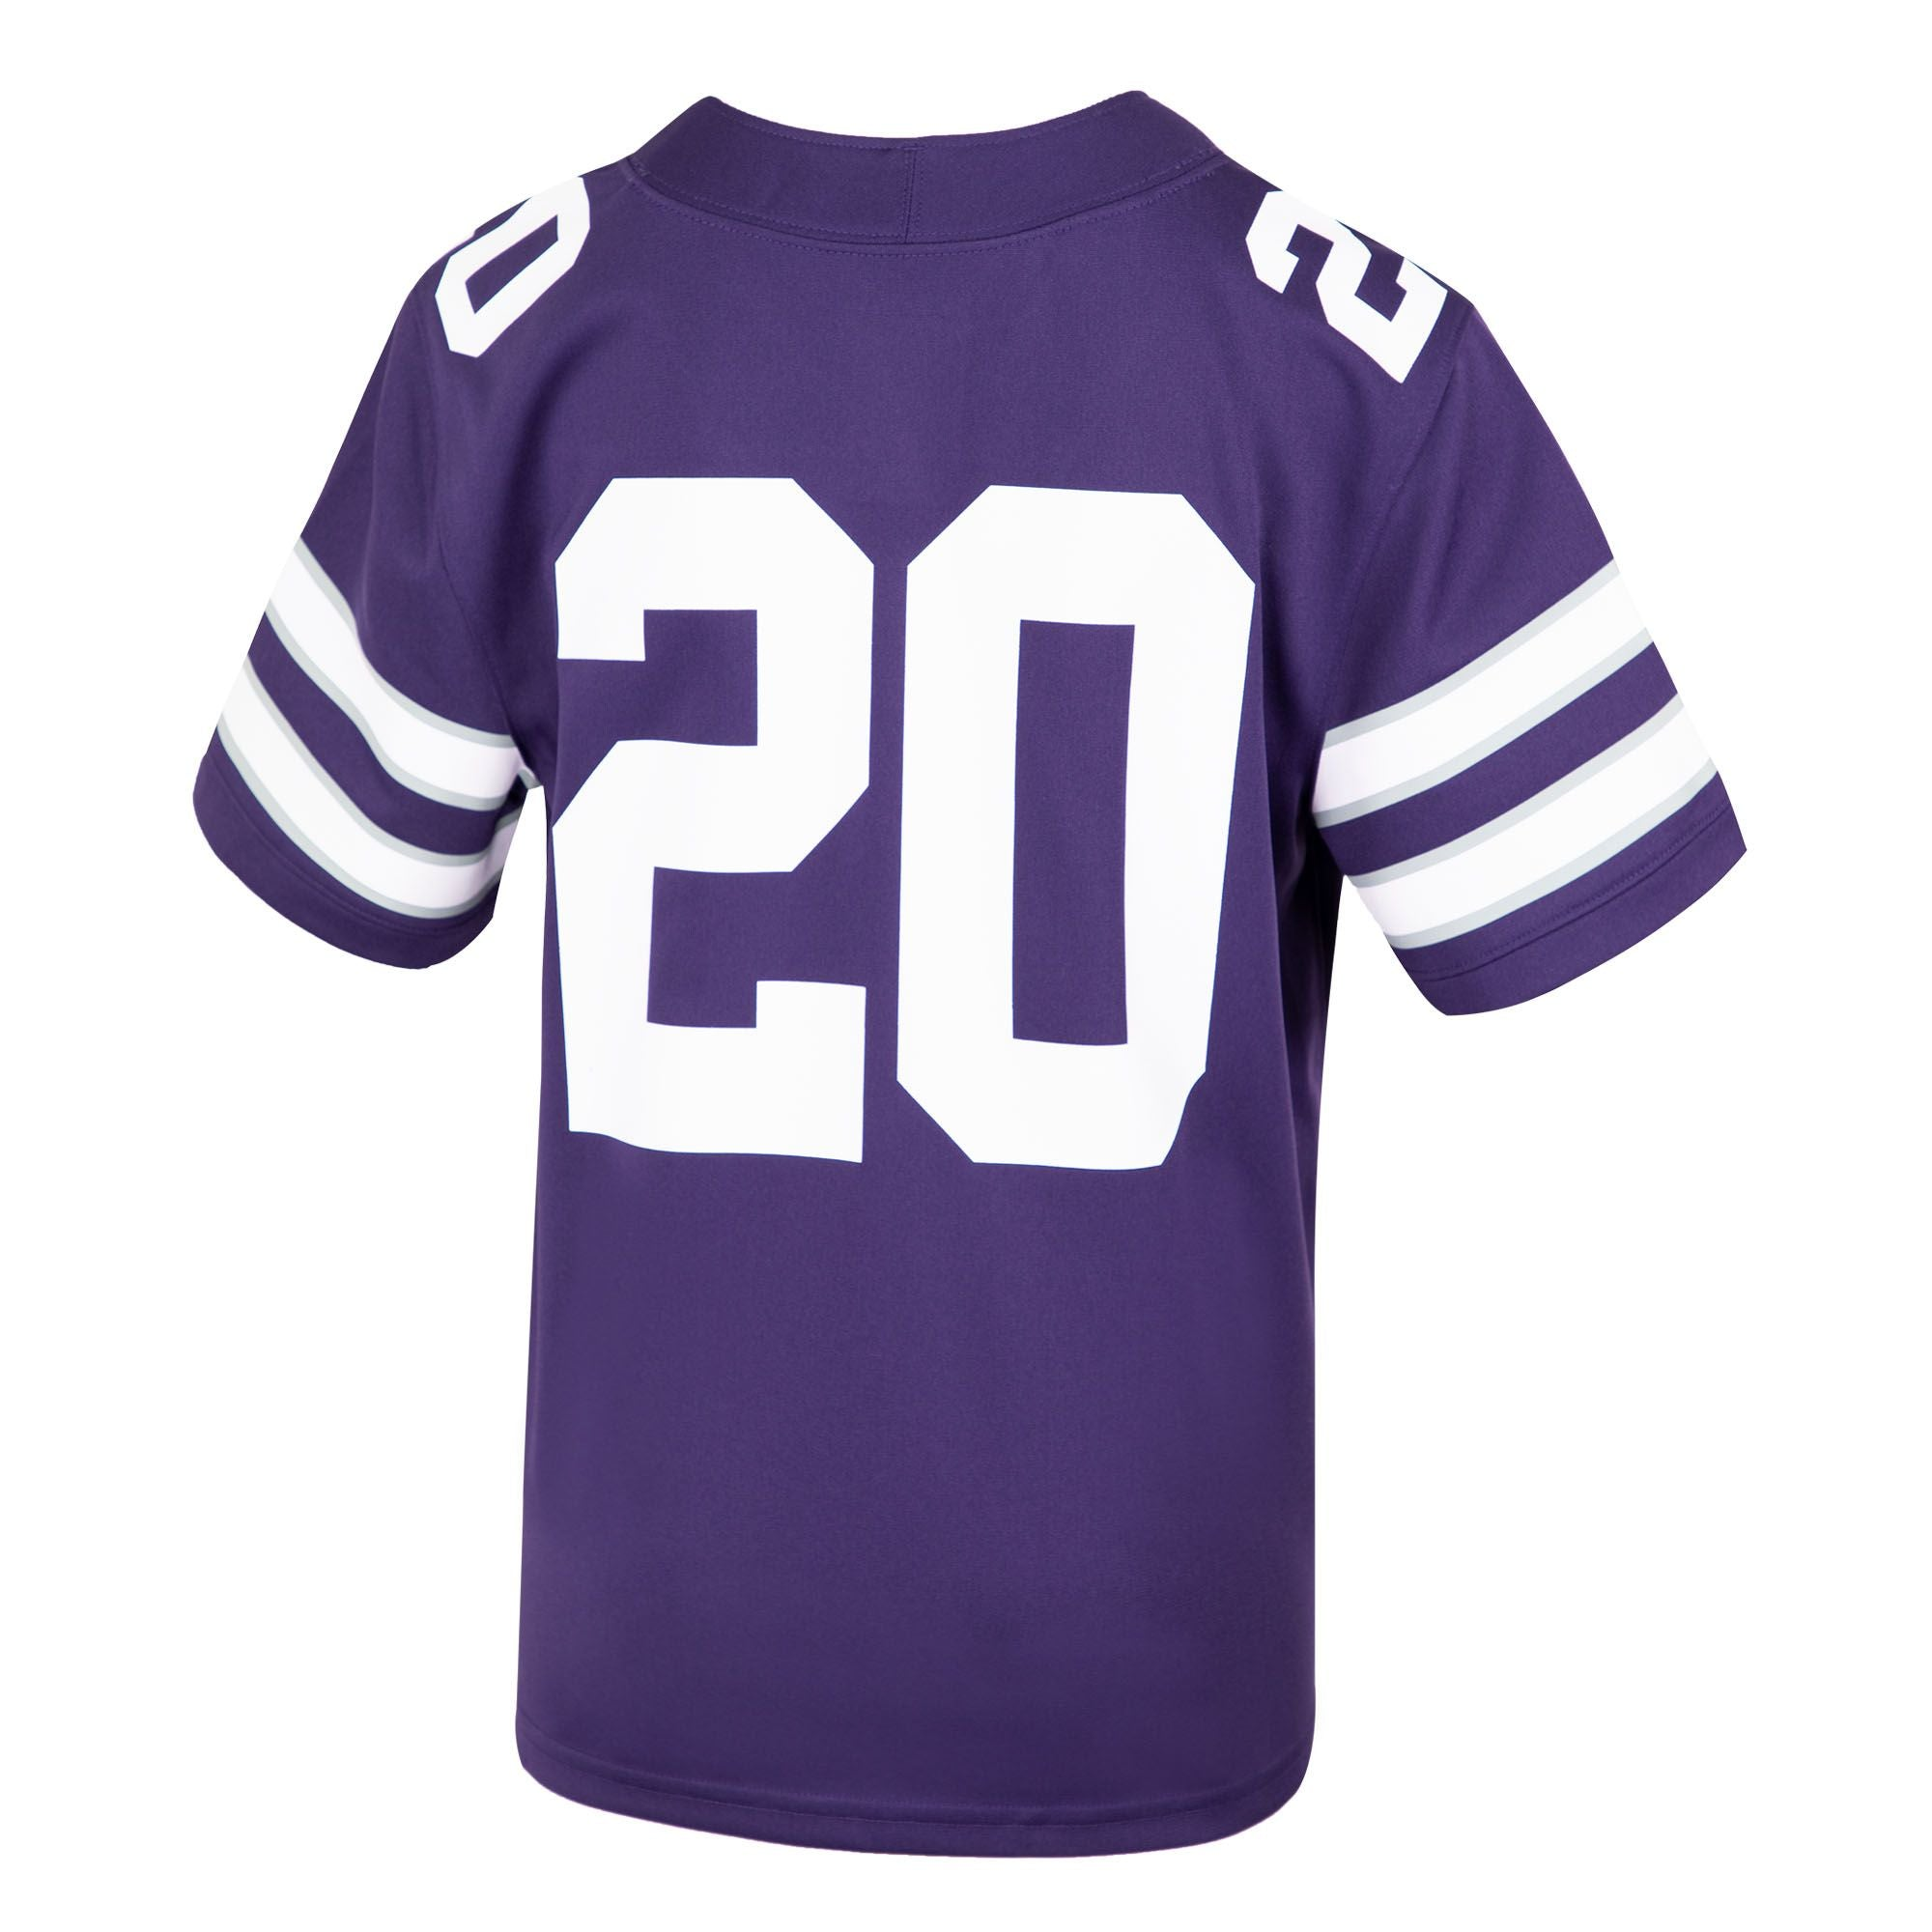 Kansas State Wildcats Nike Youth Boys Replica Jersey - 2008597